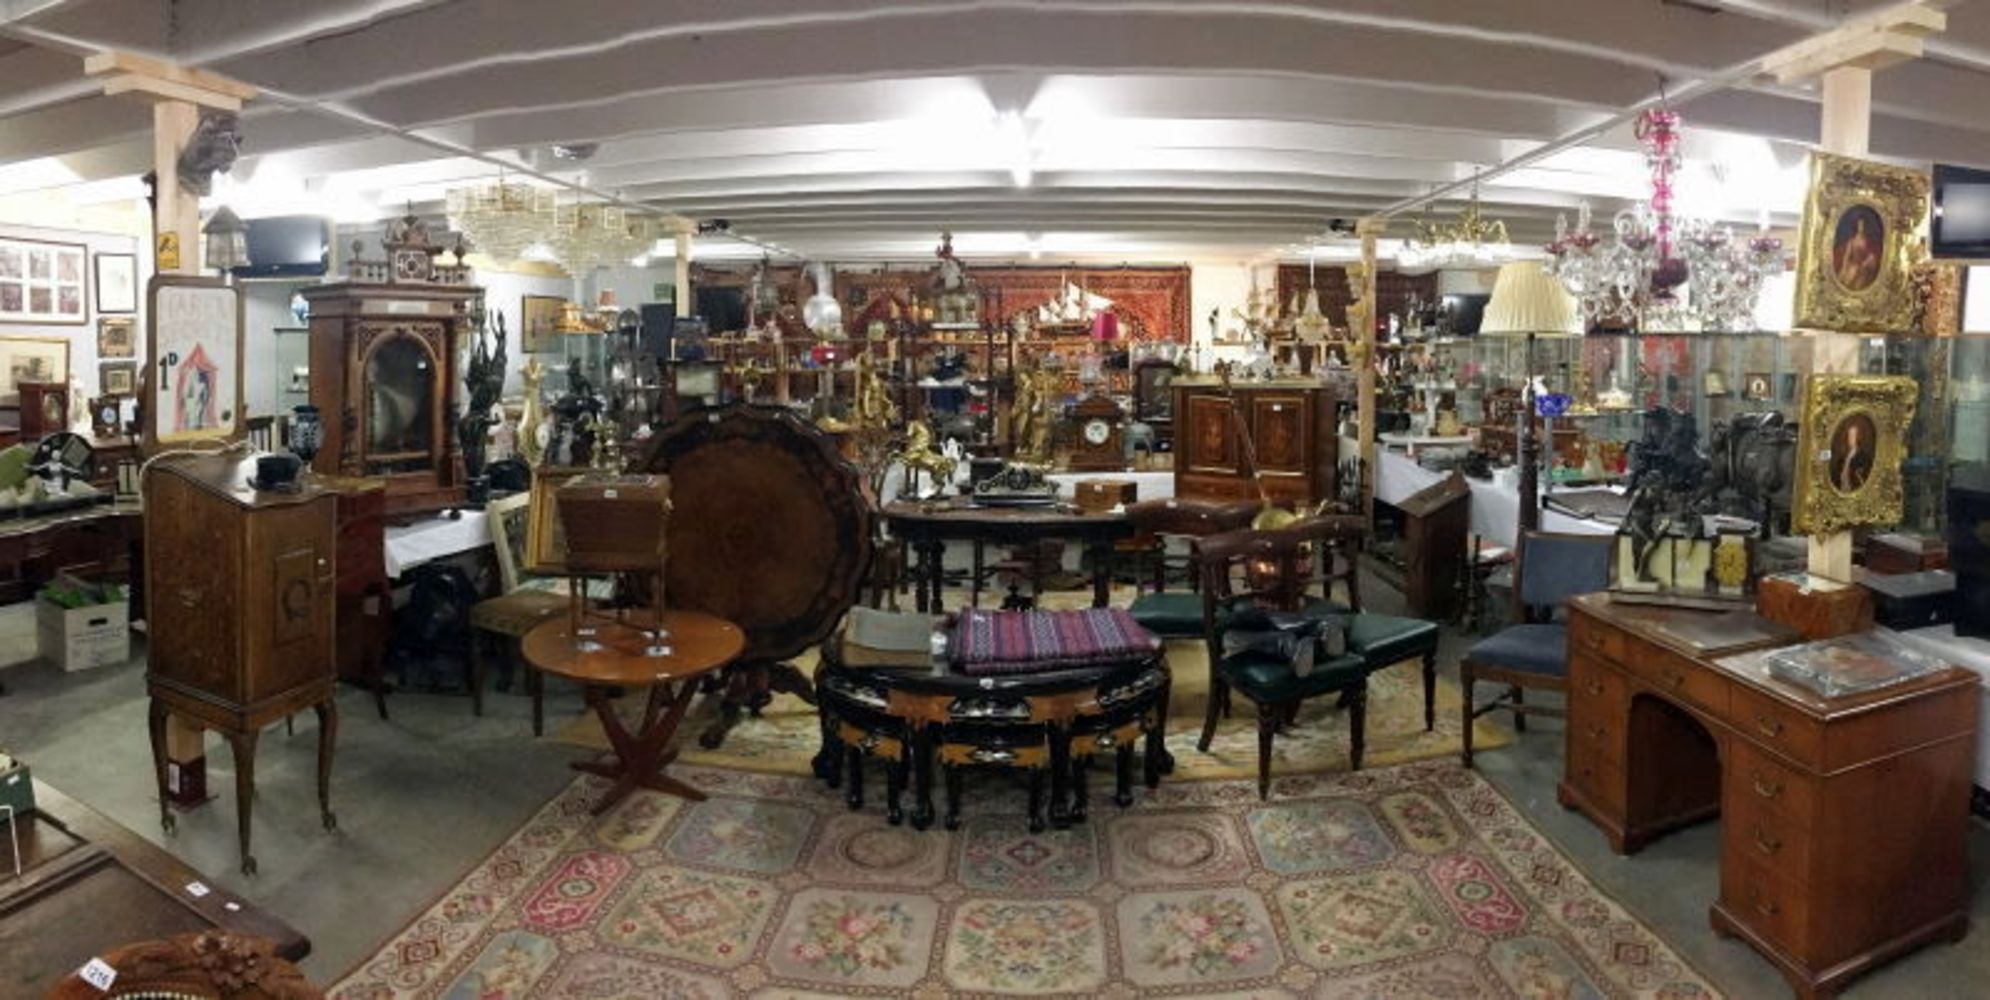 A 4 day Antiques & Collectors including Gold, Jewellery, Silver, Furniture, etc. DUE COVID RESTRICTIONS THIS SALE WILL BE ON LINE BIDDING ONLY..